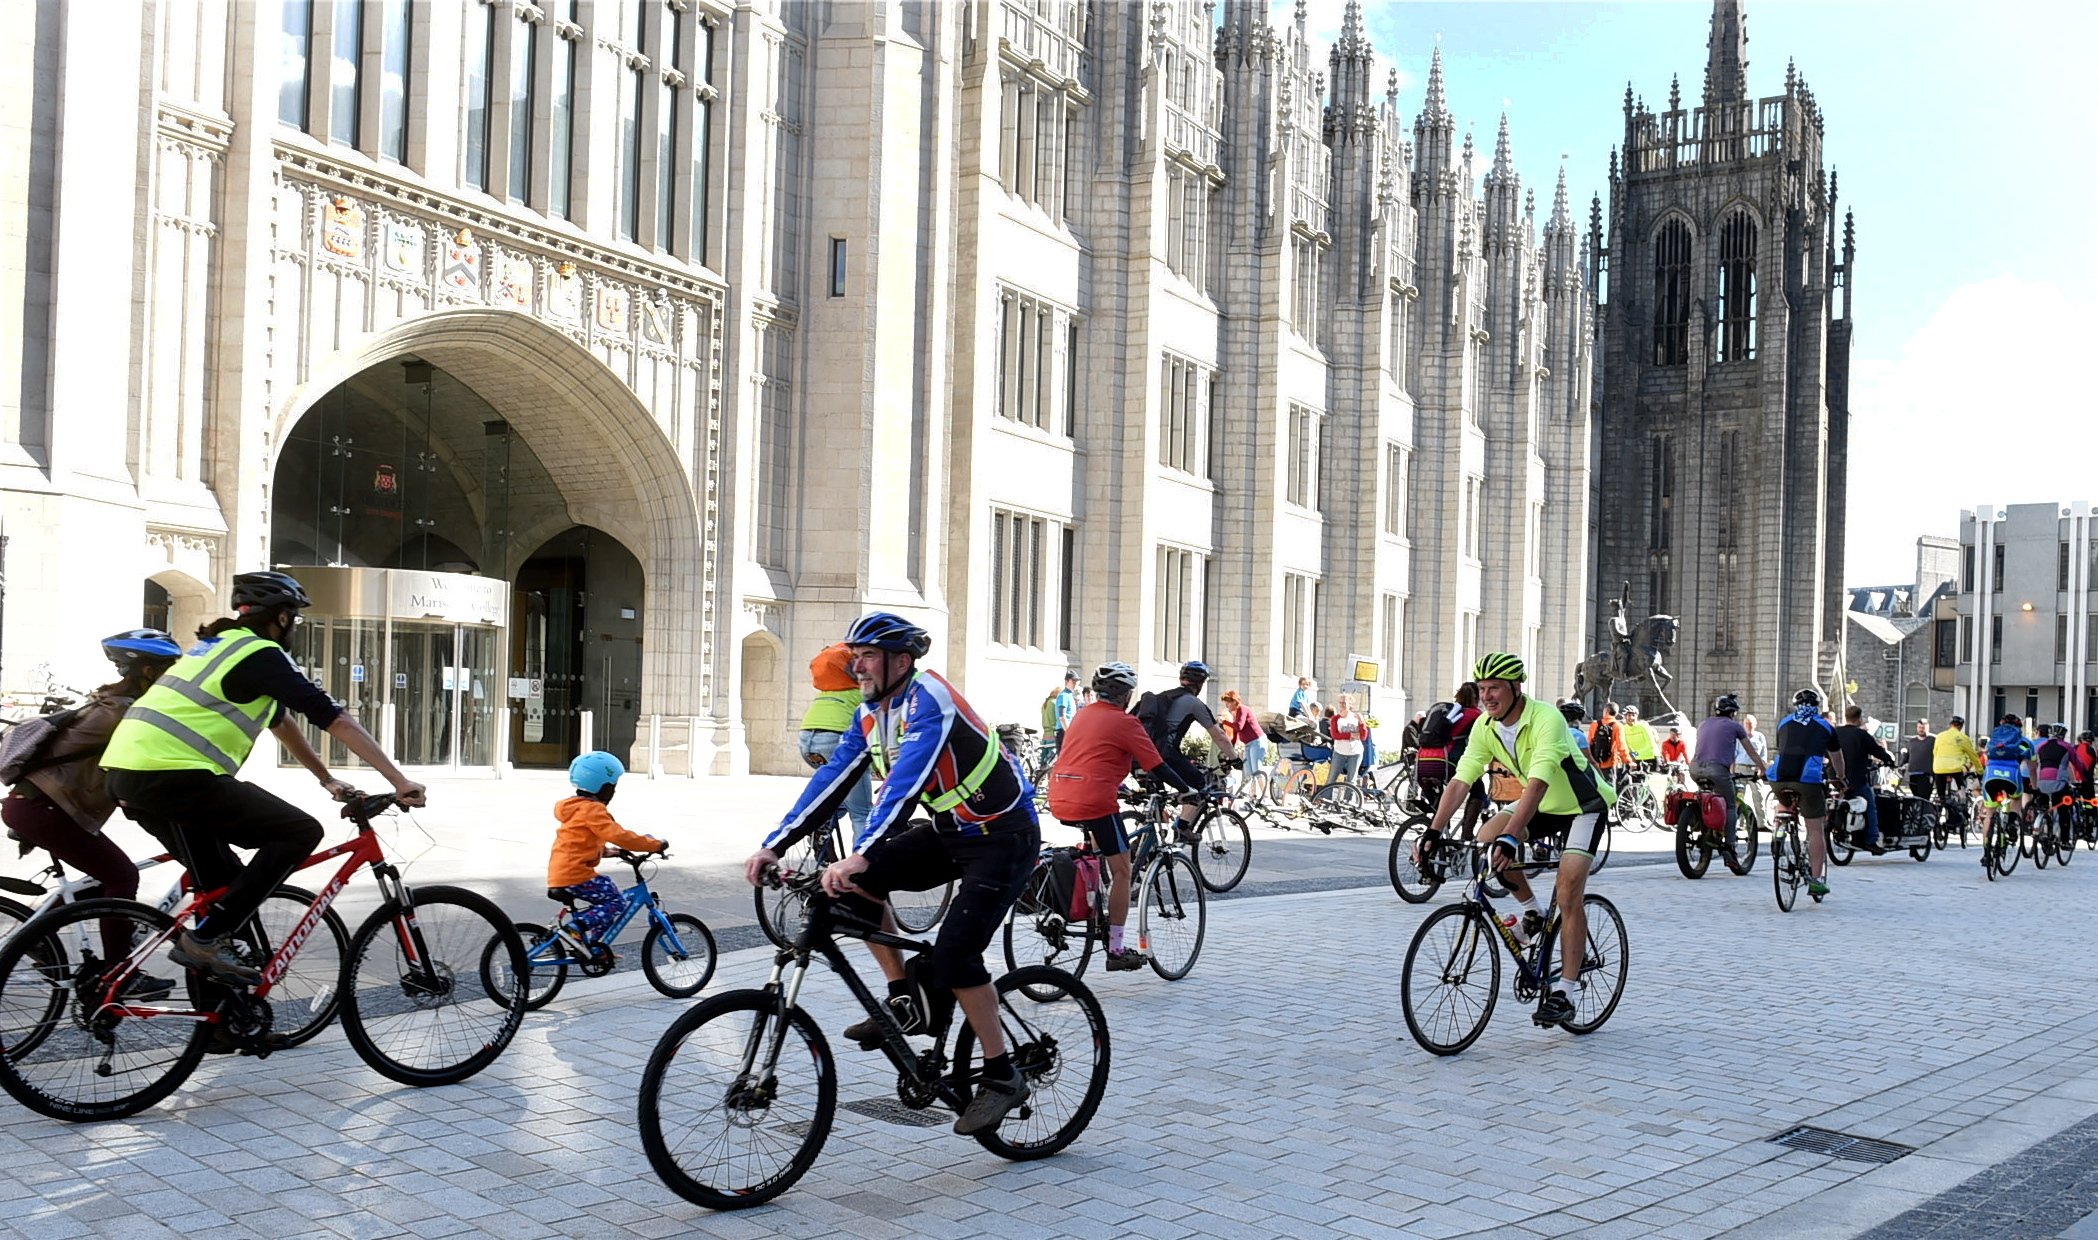 Cyclists protesting outside Mariscal College today